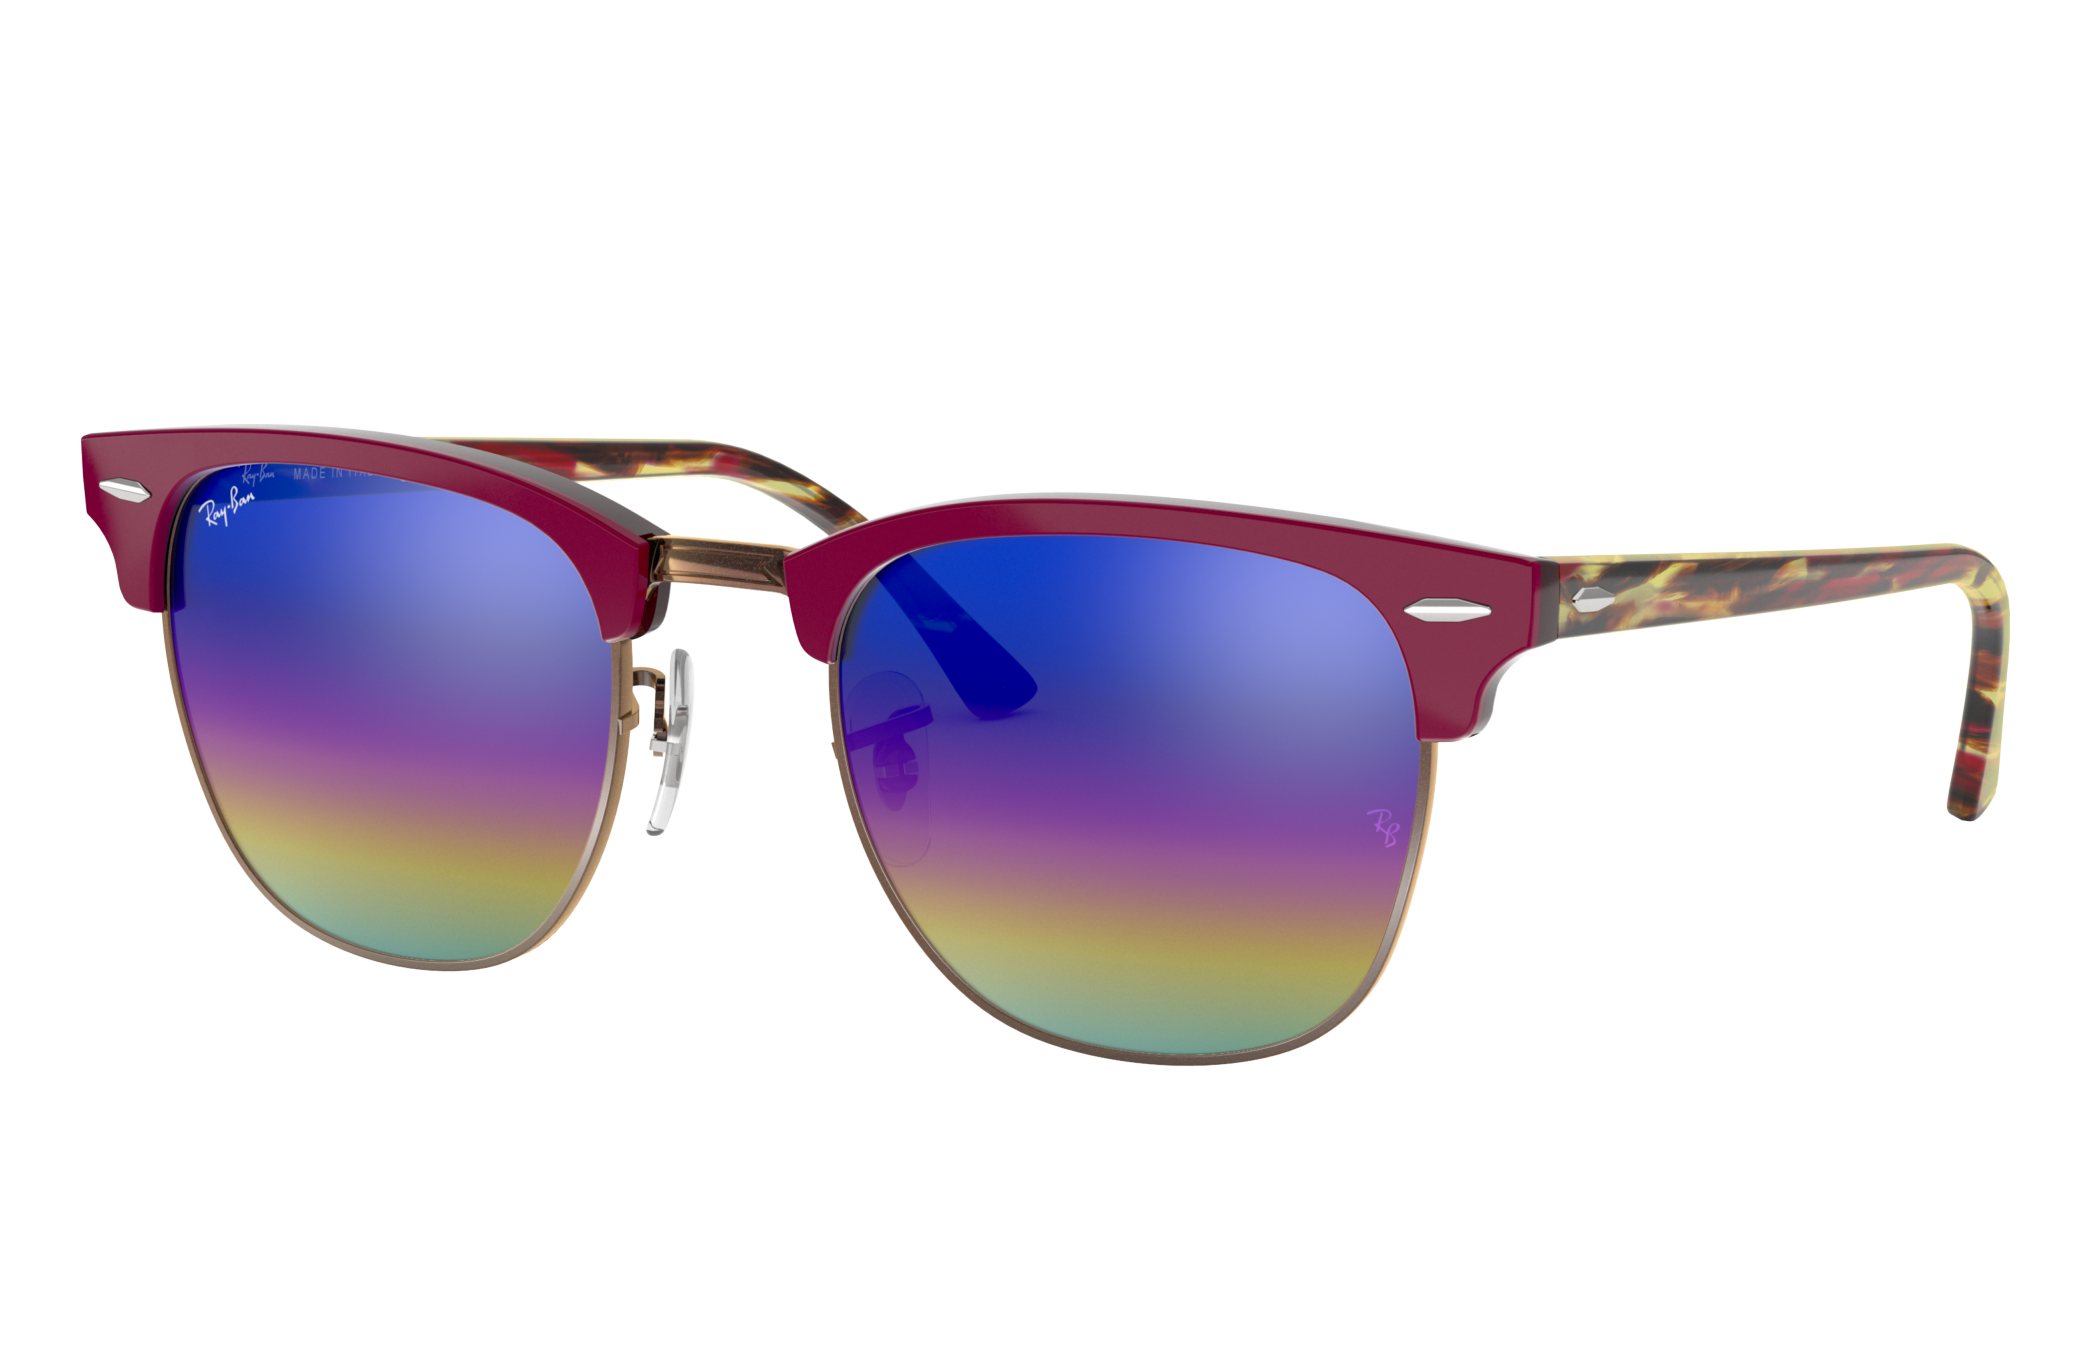 Ray-Ban Clubmaster Mineral Flash Lenses Red, Blue Lenses - RB3016